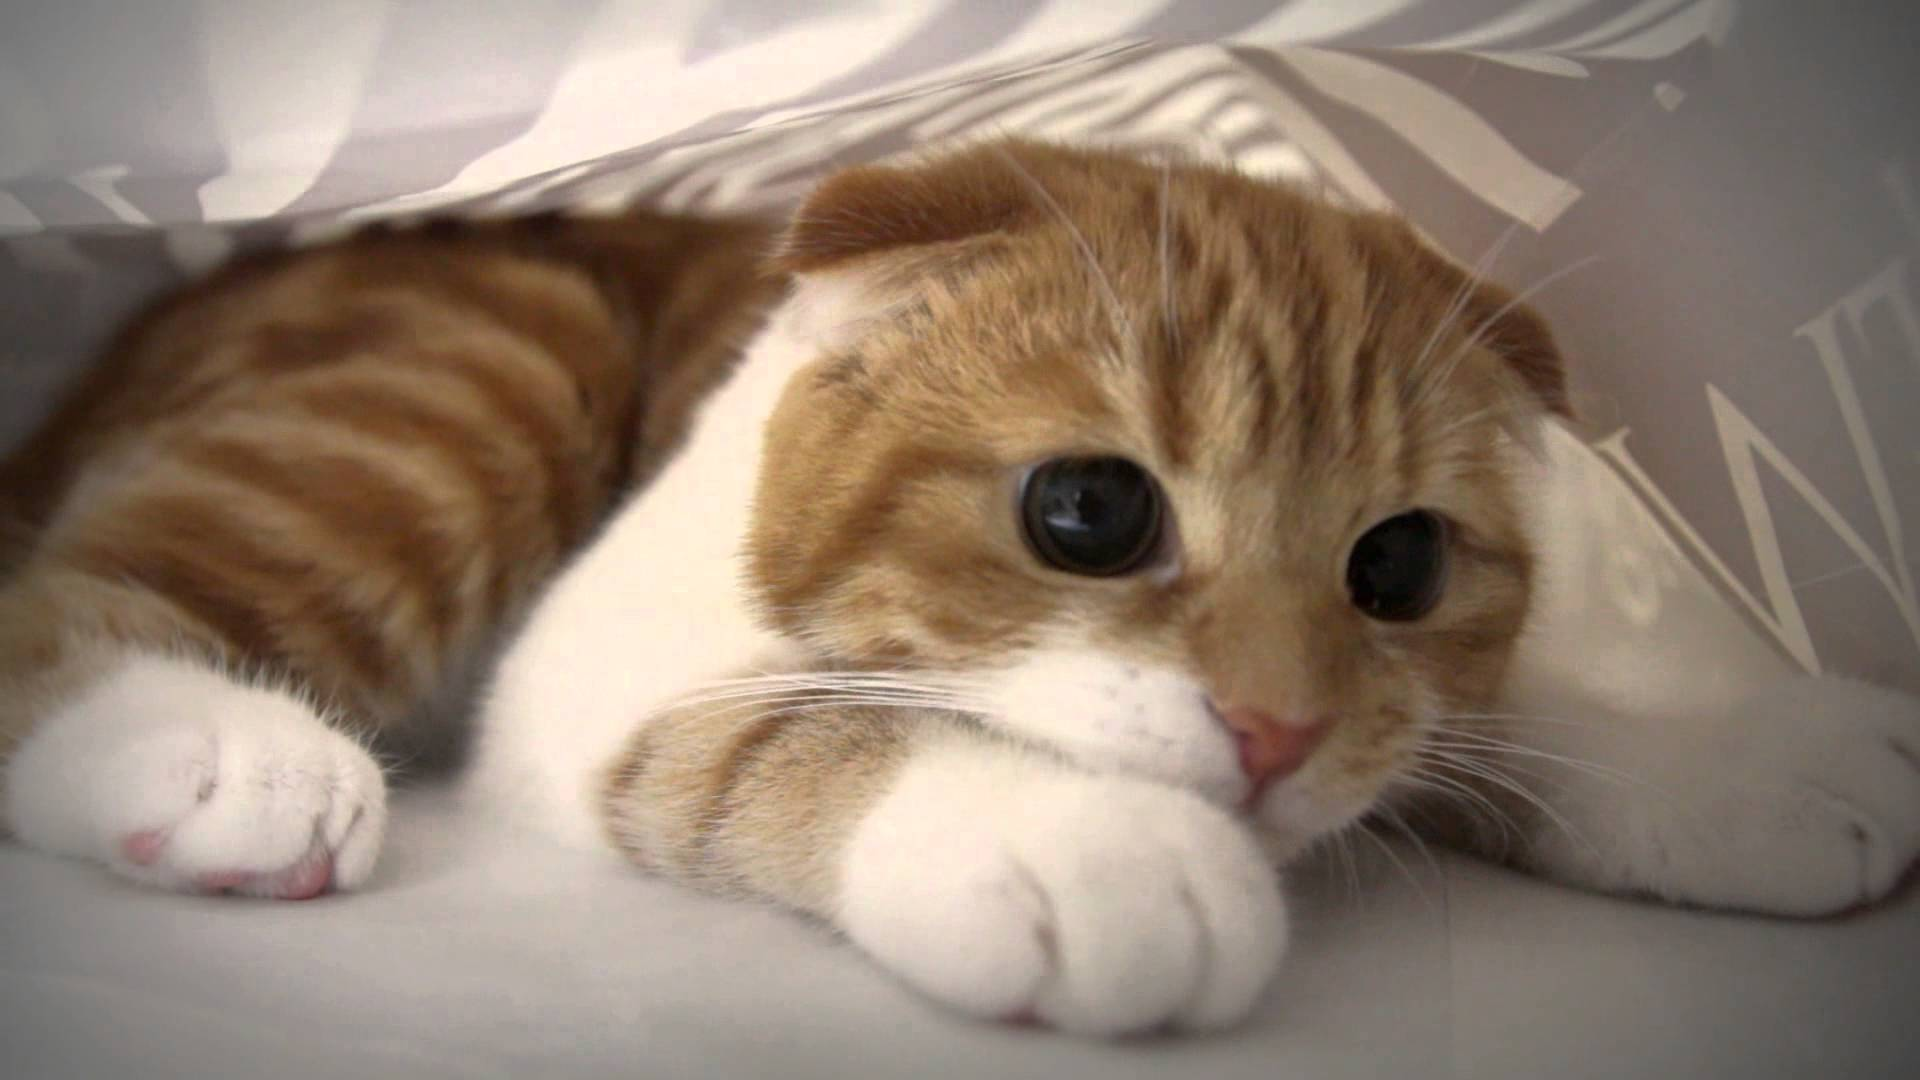 animals___cats_munchkin_cat_eye_092272_